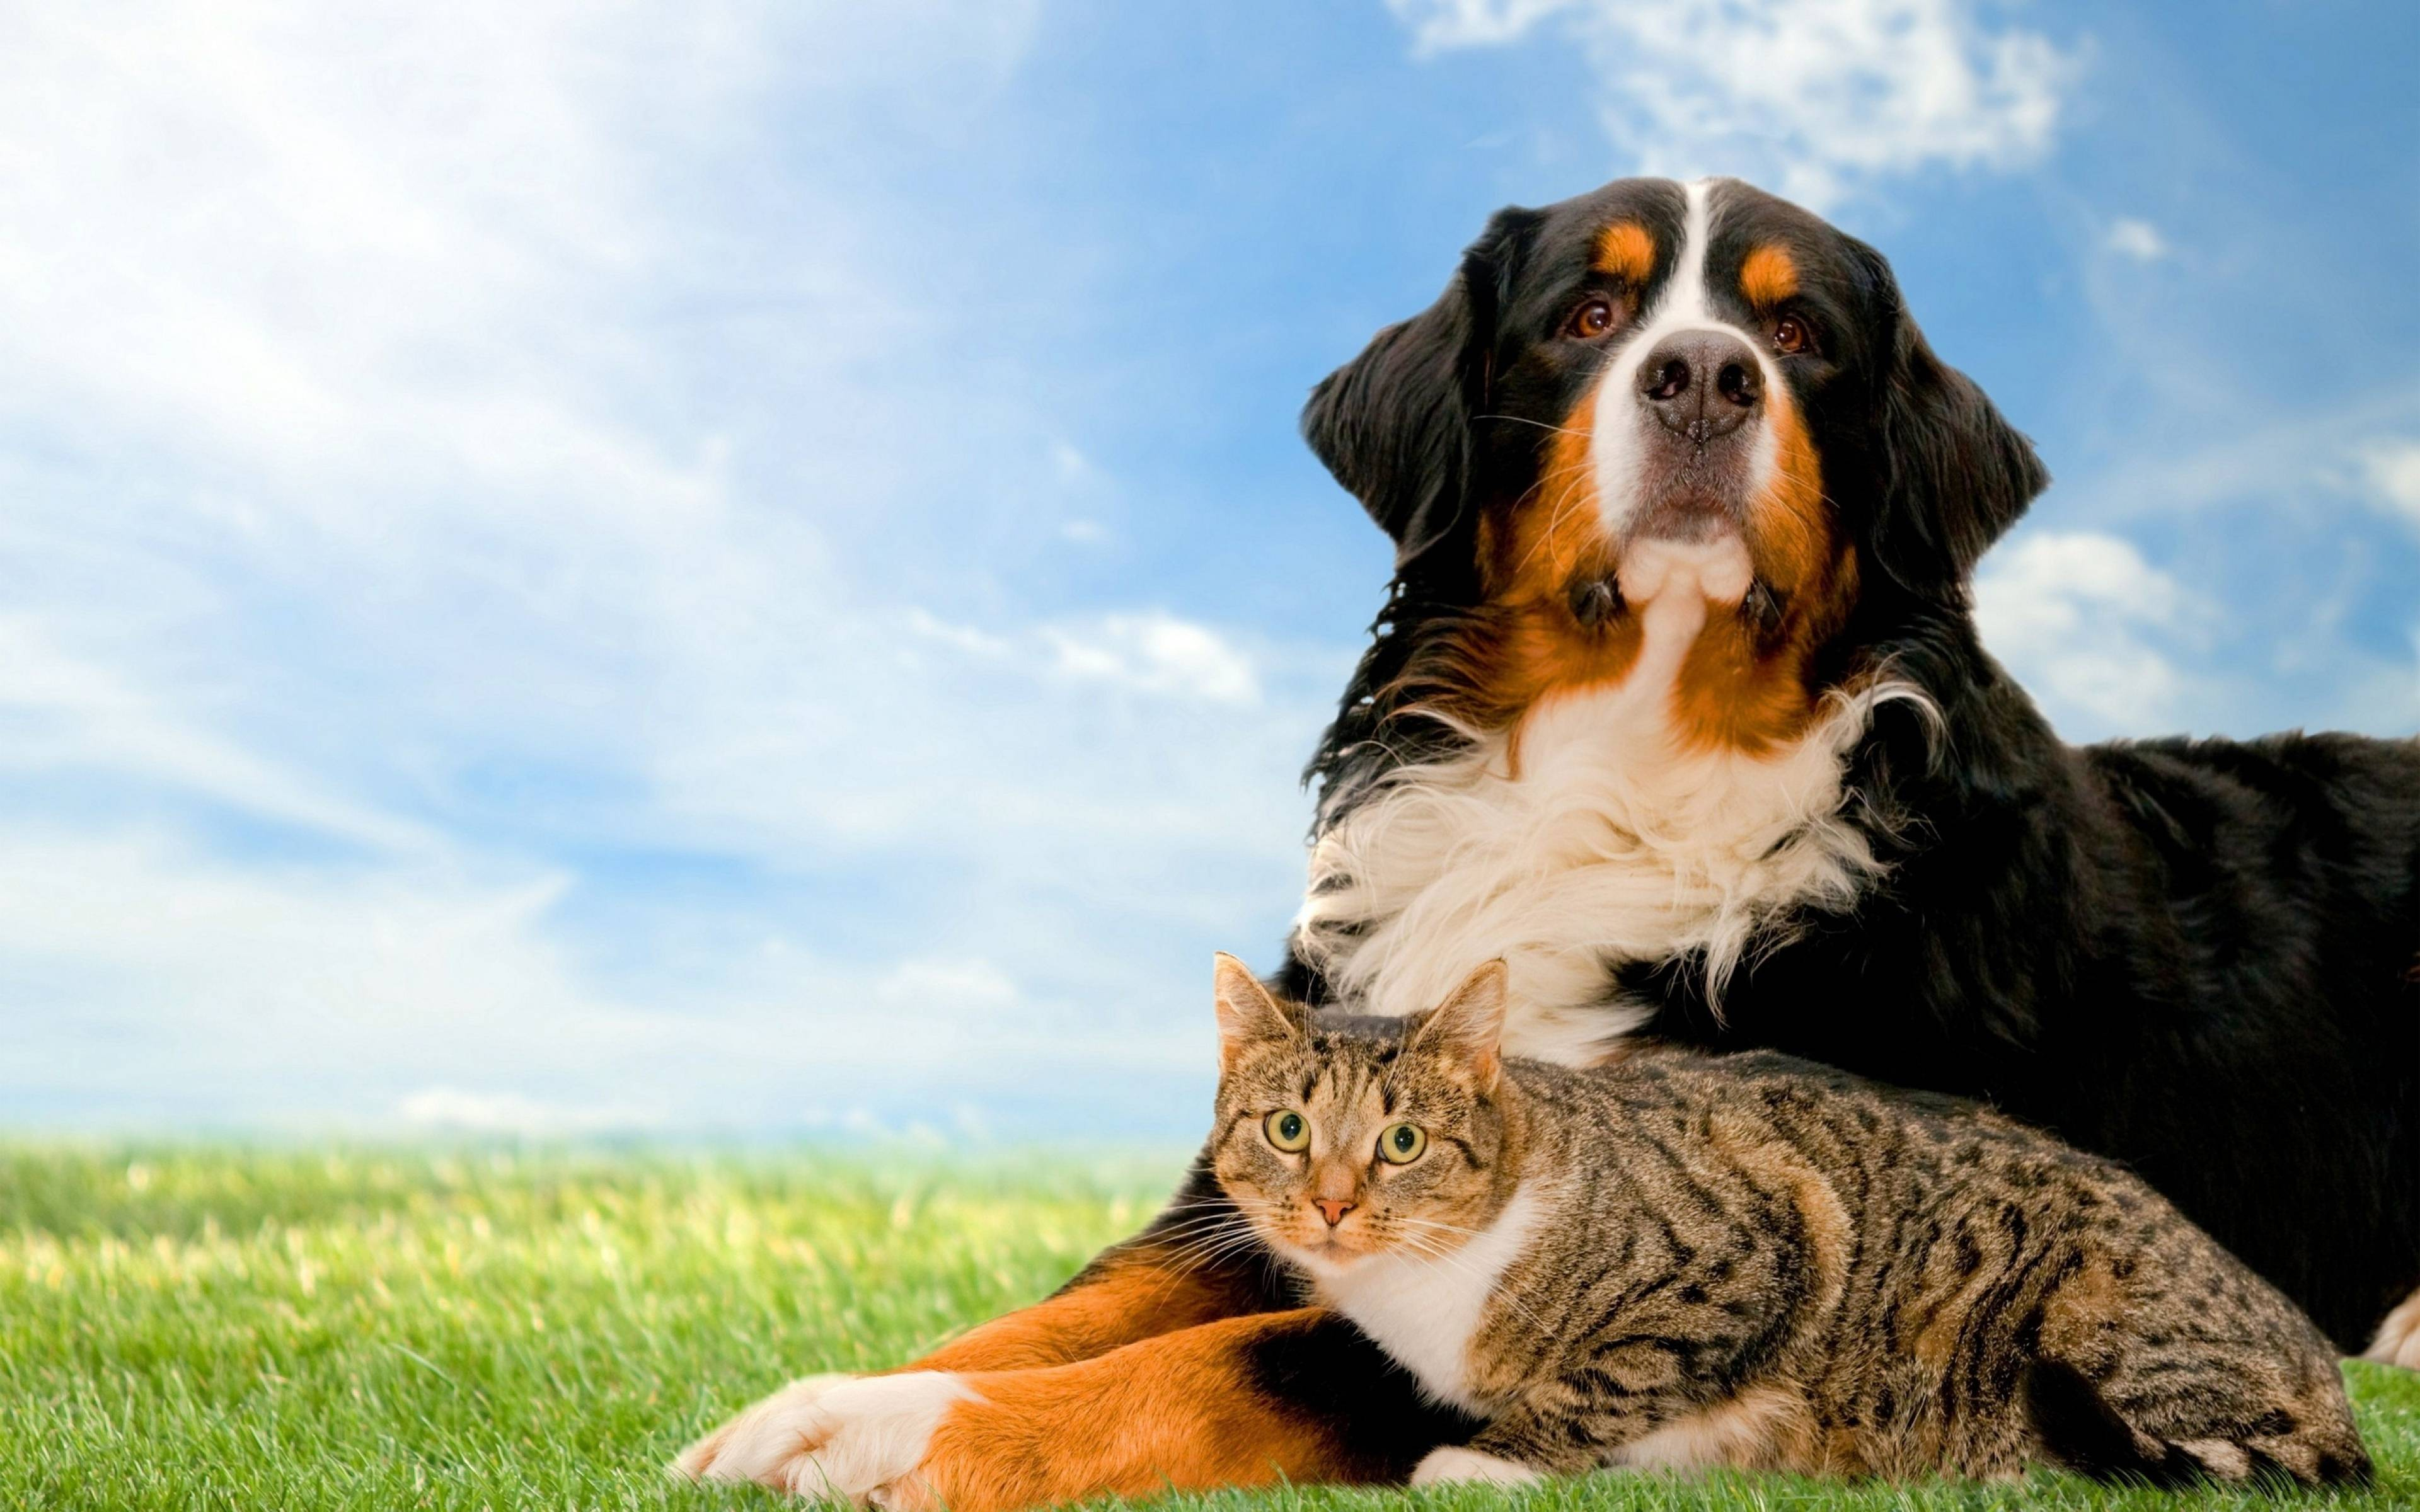 Dog And Cat Wallpapers 3840x2400